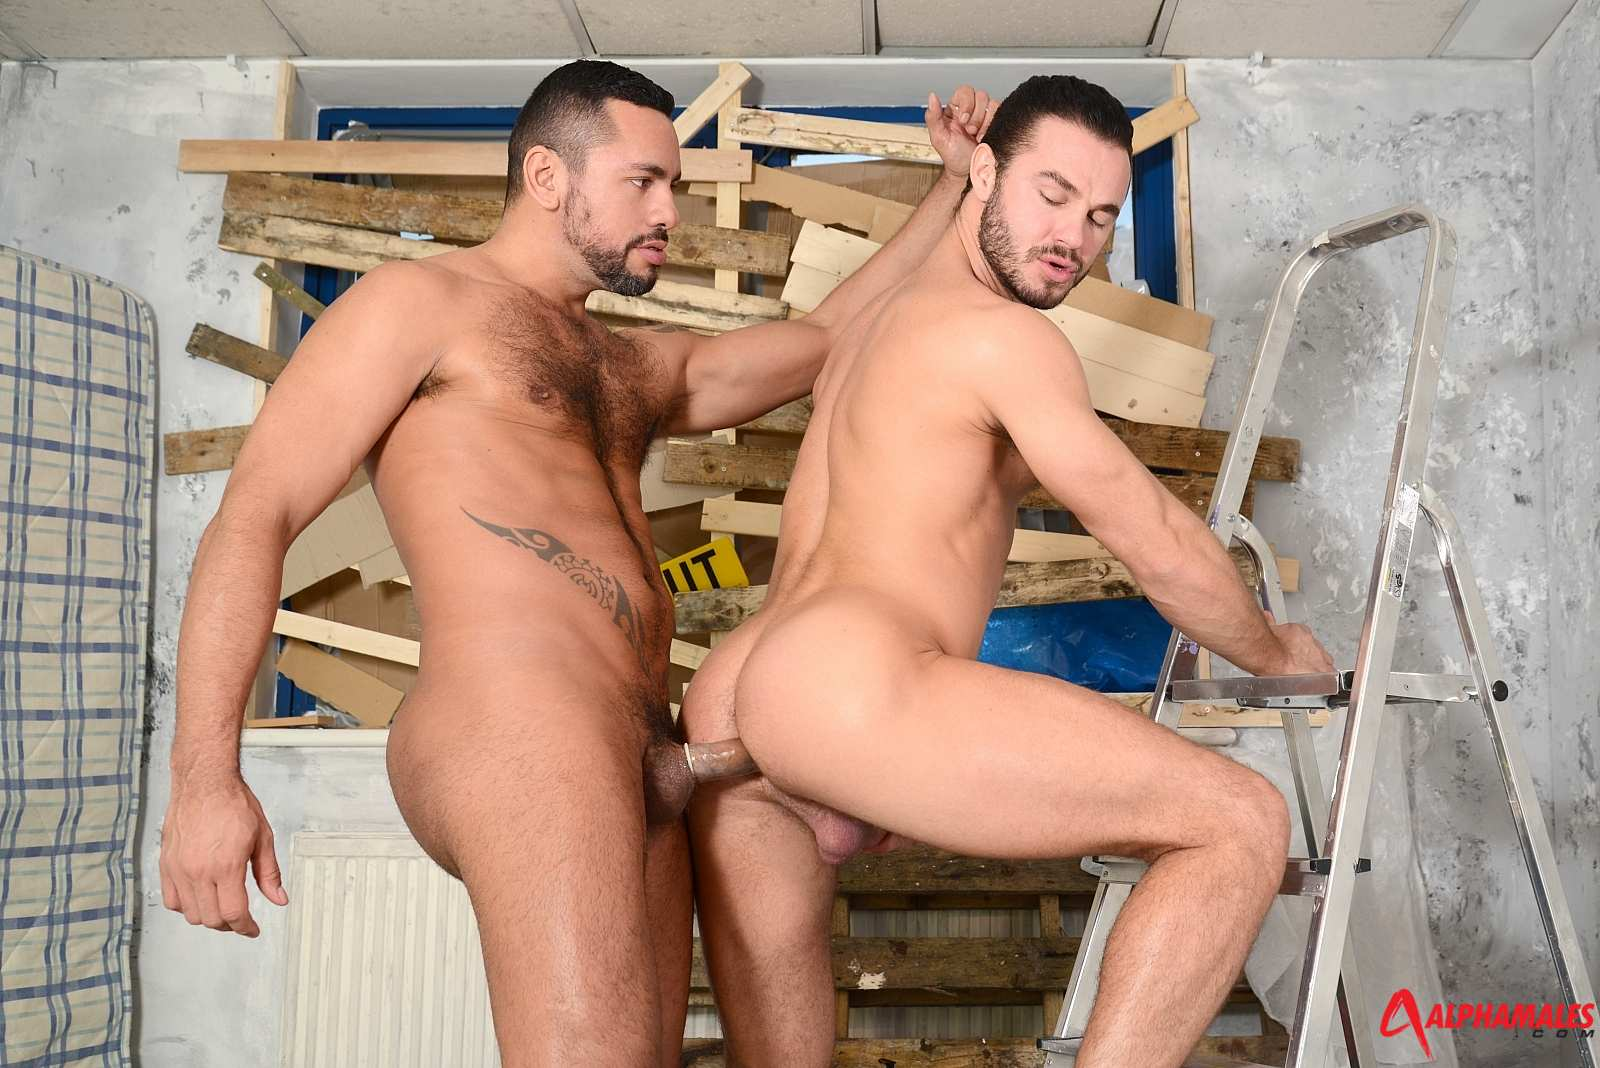 AlphaMales-Jessy-Ares-and-Tiko-Masculine-Men-Fucking-Amateur-Gay-Porn-07 Amateur Masculine Blue Collar Muscle Hairy Men Fucking